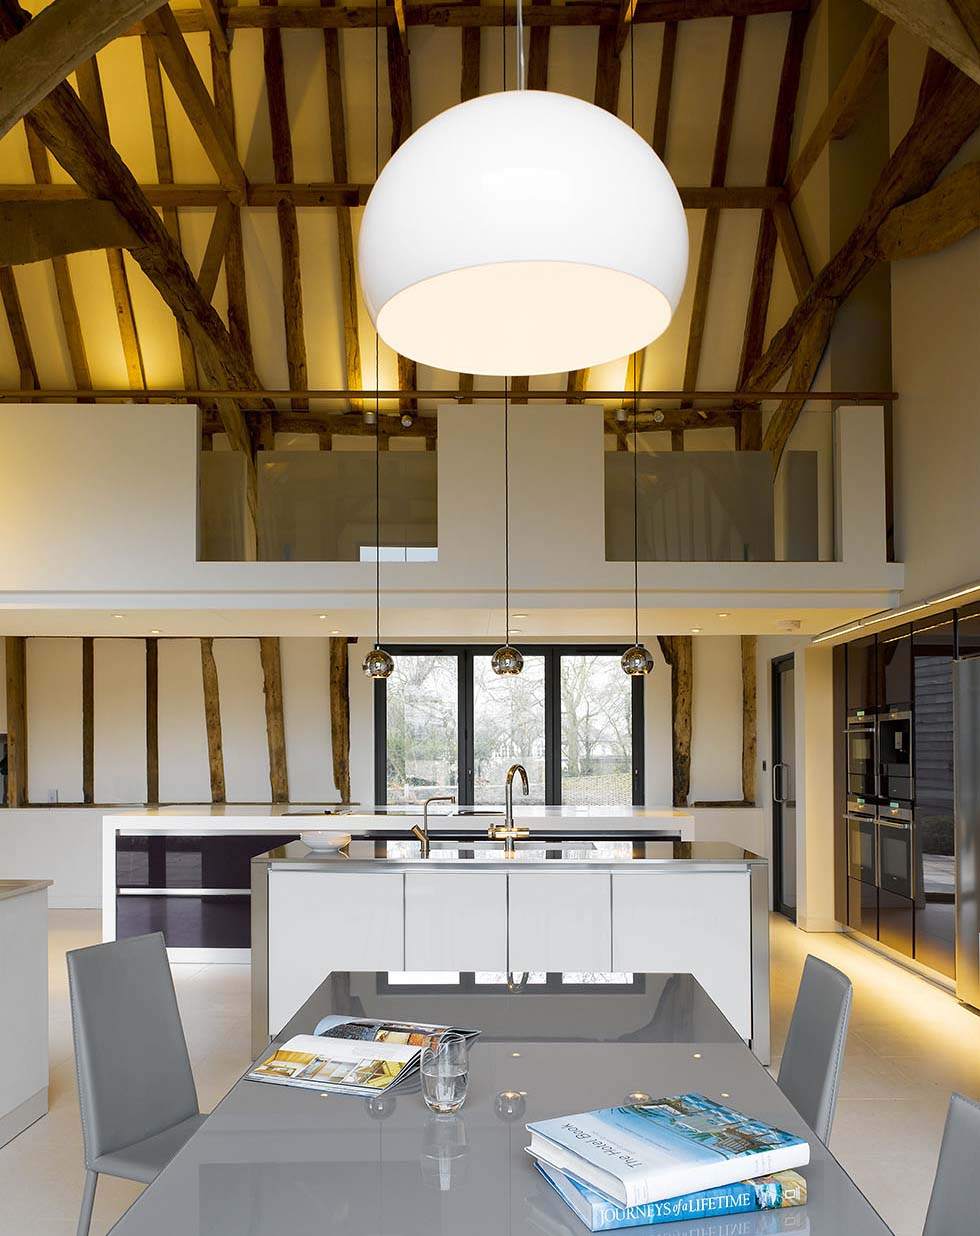 Chantry Barn Kitchen Dining Area